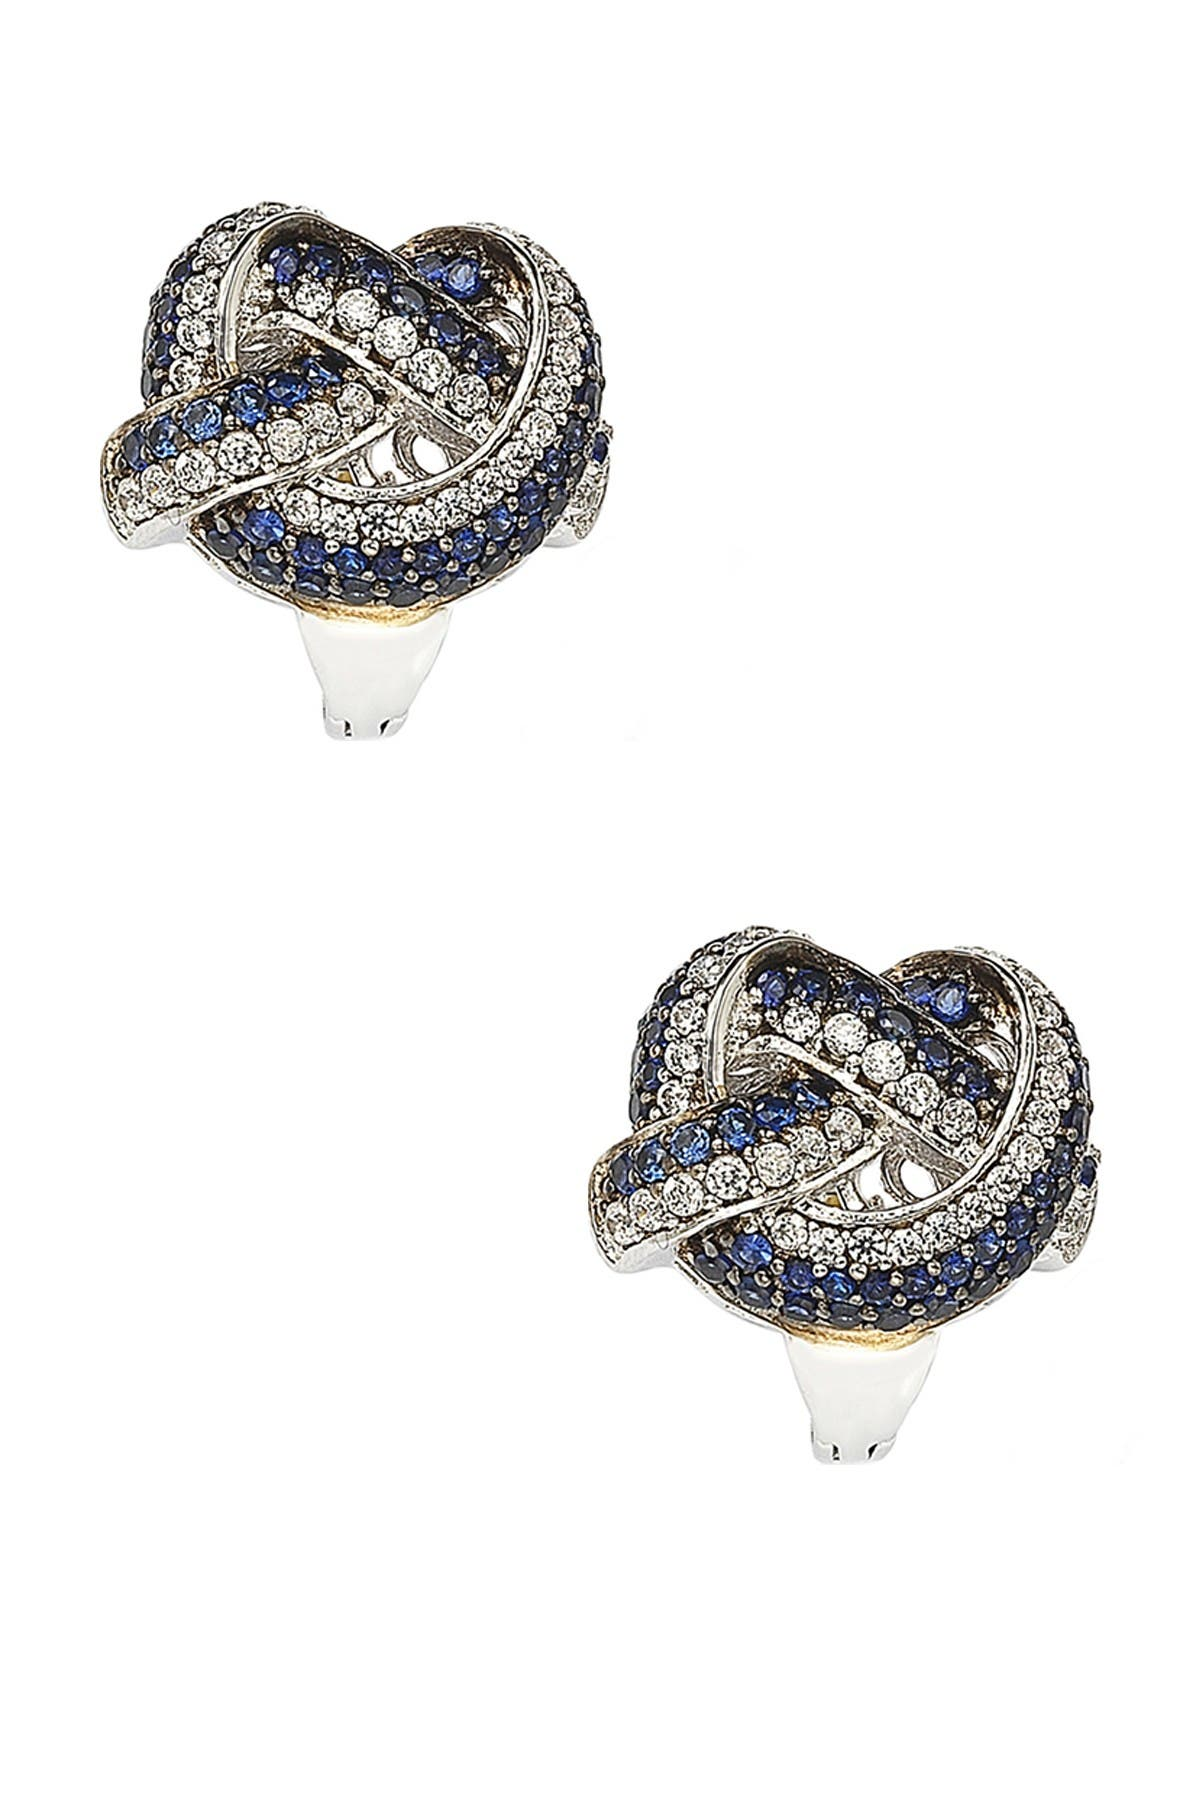 Image of Suzy Levian Two-Tone Blue Sapphire, Created White Sapphire & Brown Diamond Earrings - 0.02 ctw